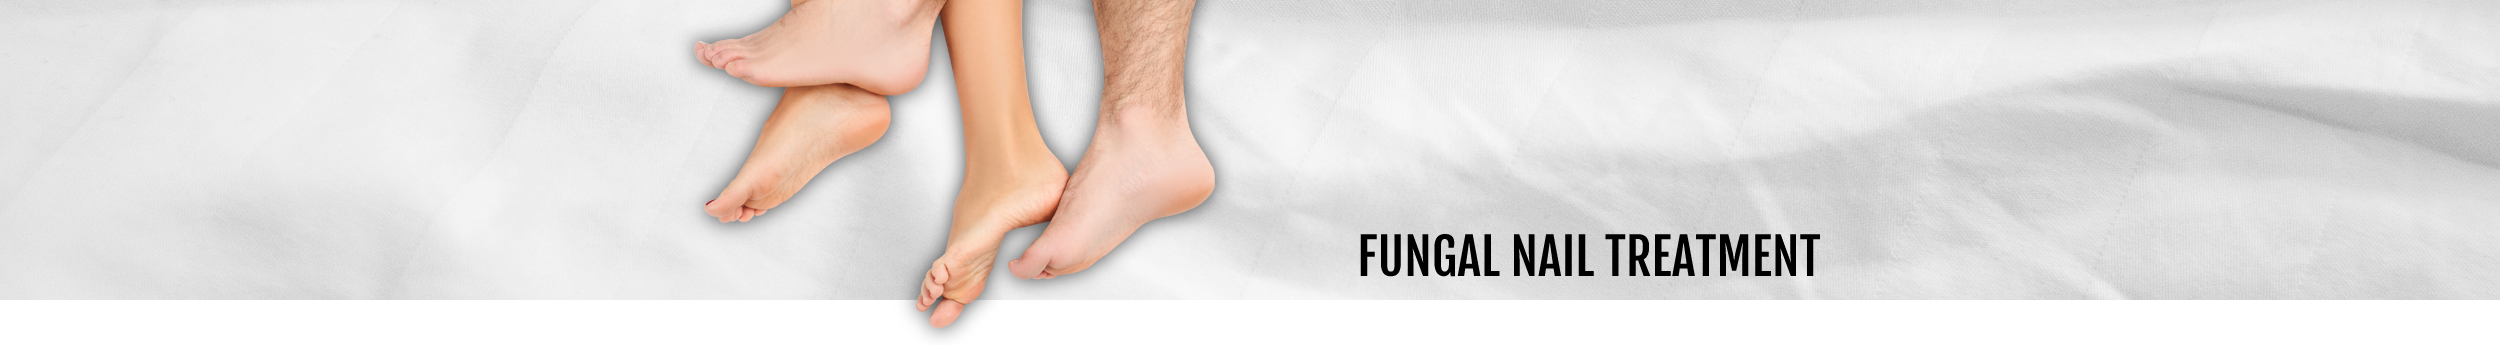 Fungal Nail treatment header at the Walk IN Foot Clinic in central London